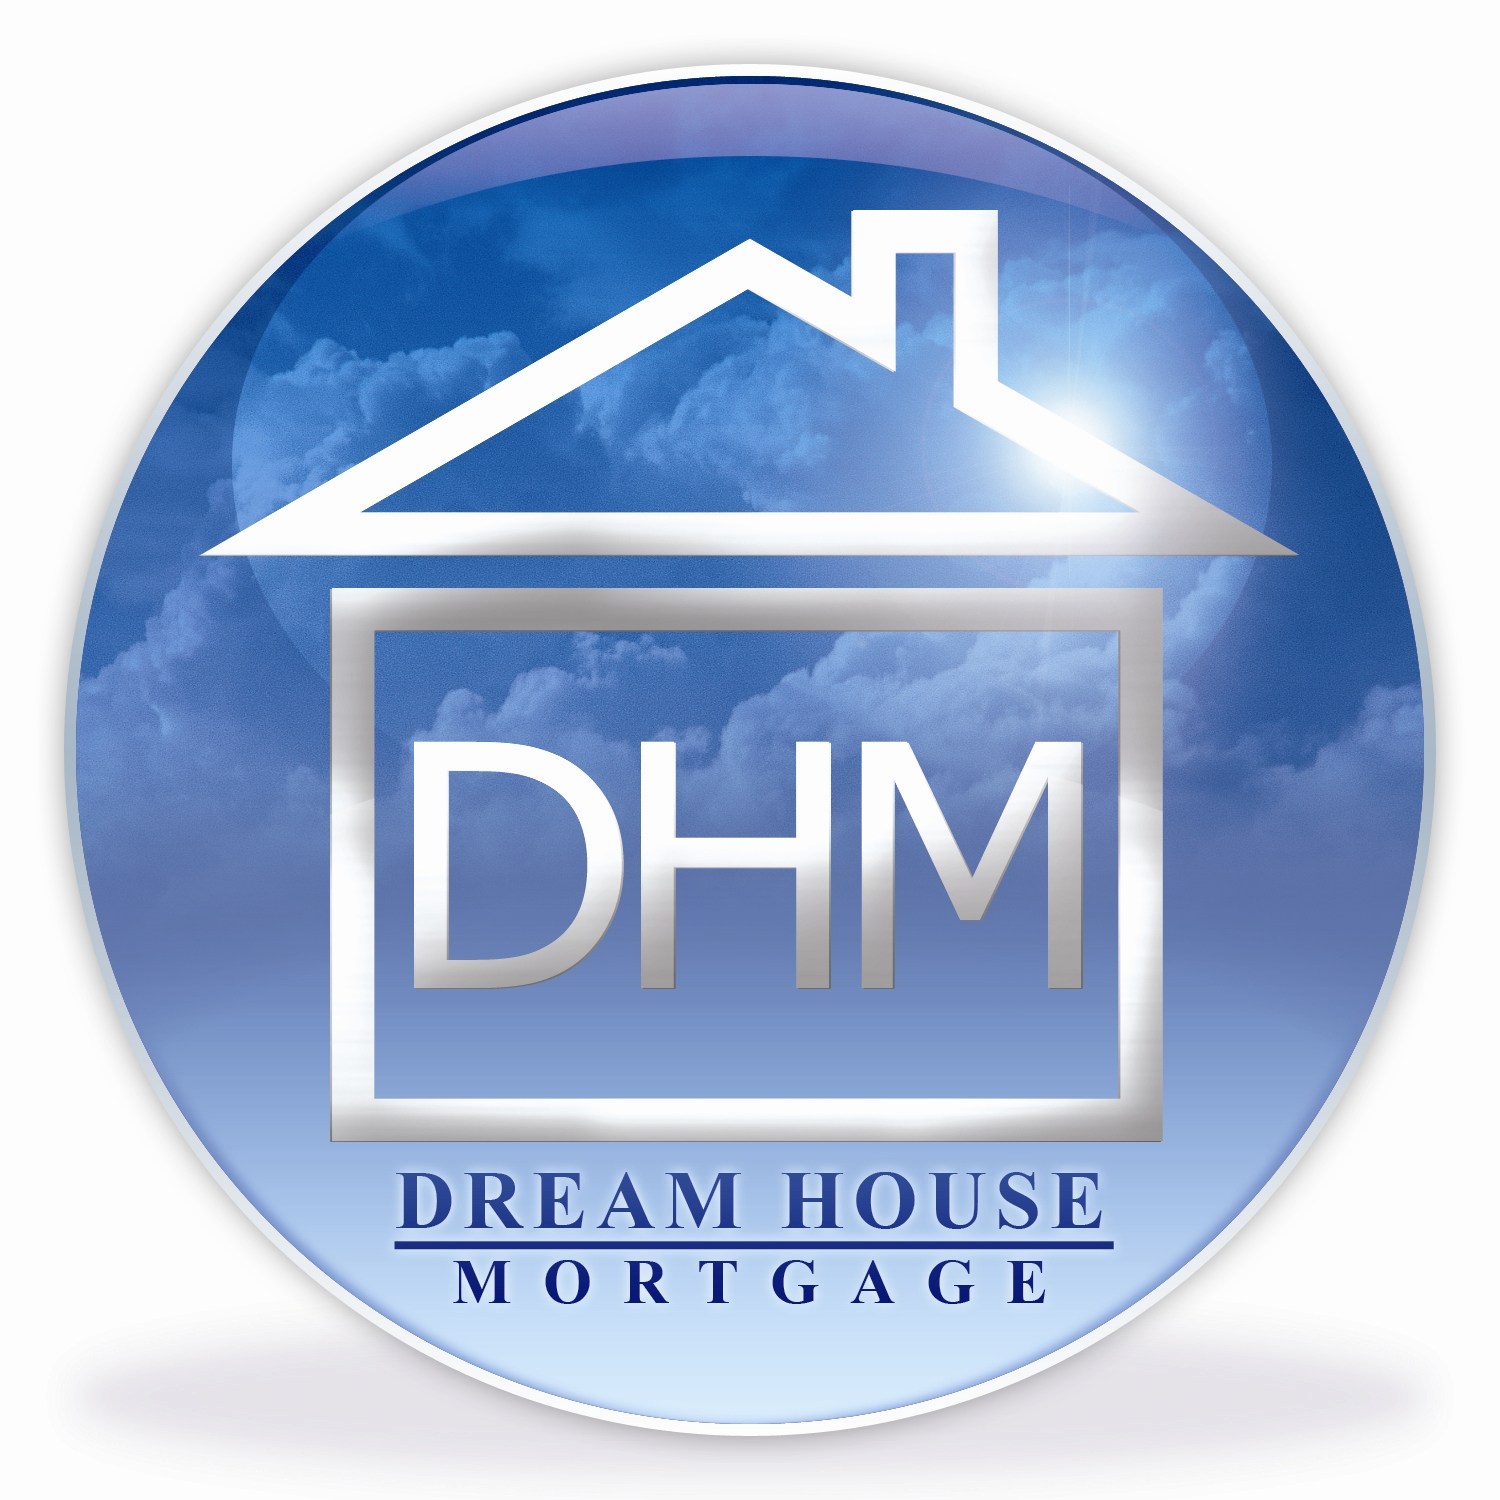 Dream House Mortgage logo